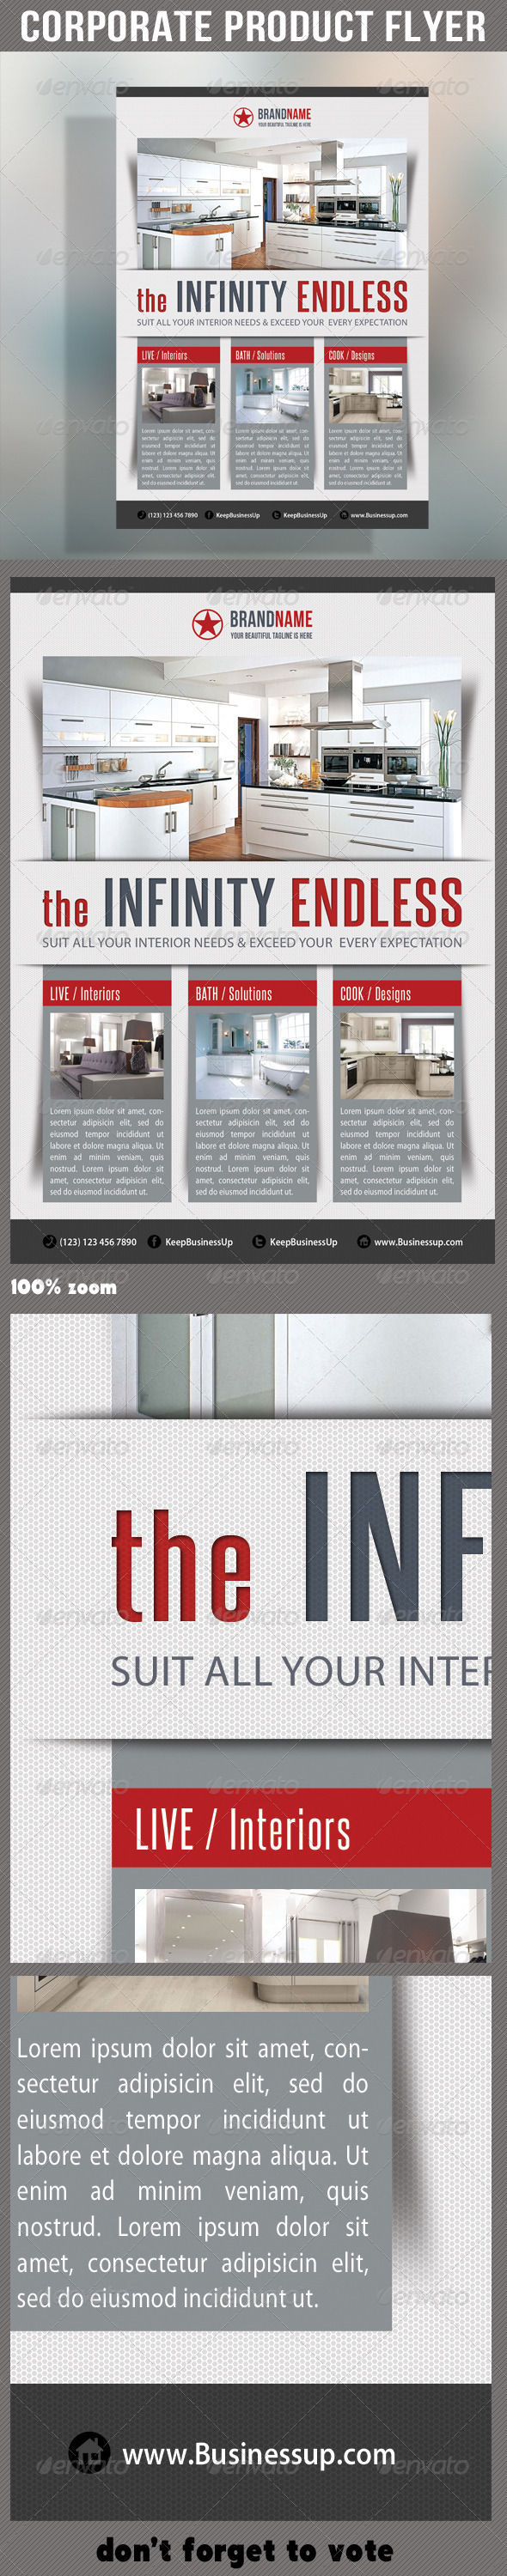 GraphicRiver Corporate Product Flyer 50 6252258